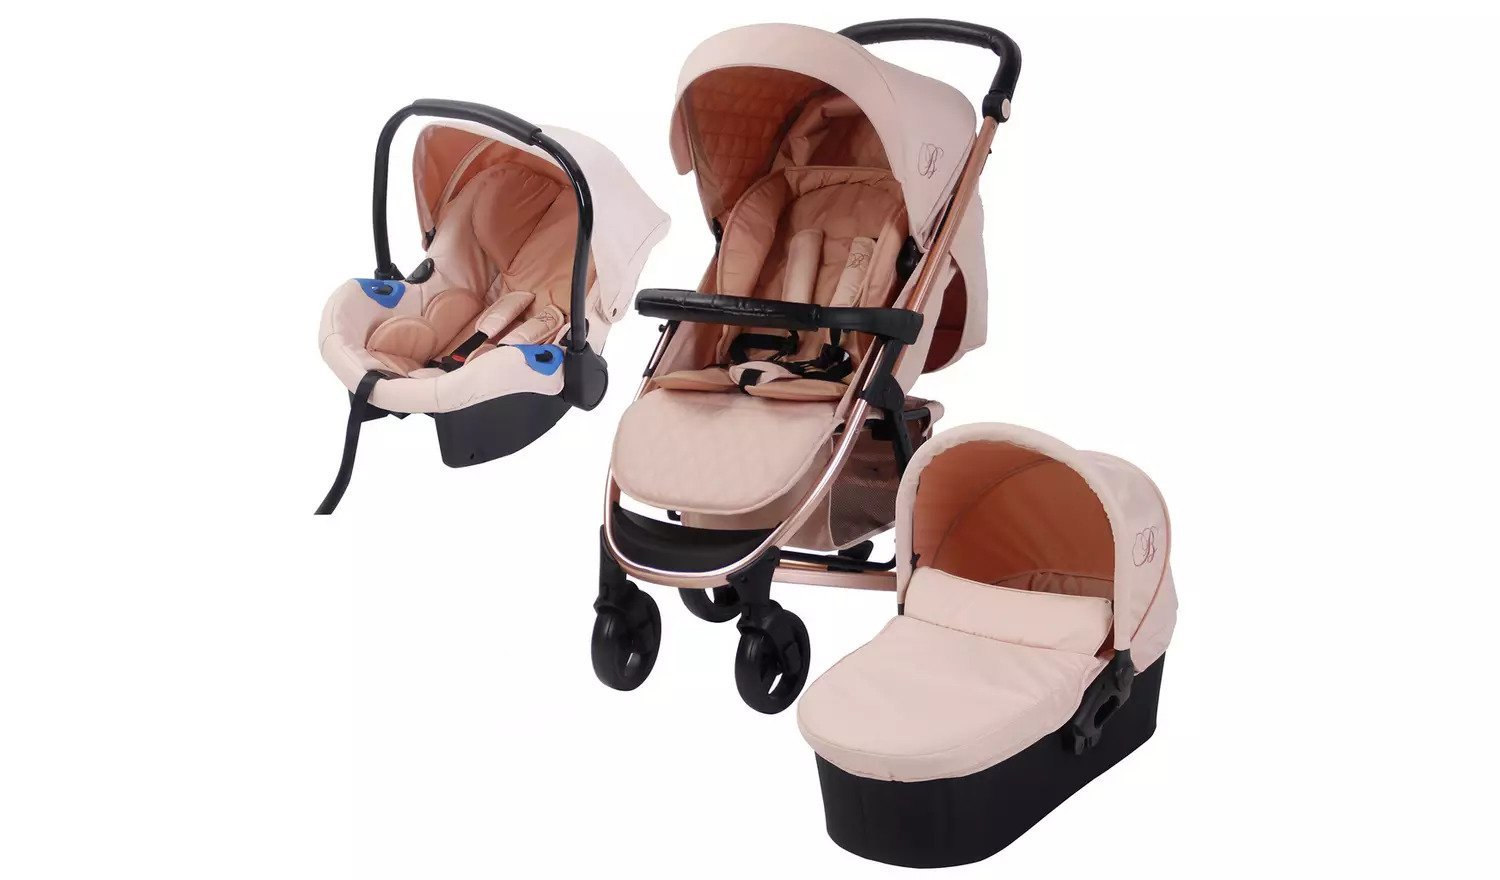 Elegant and fashionable 3 in 1 rose gold pushchair, bassinet , car seat and adaptor.